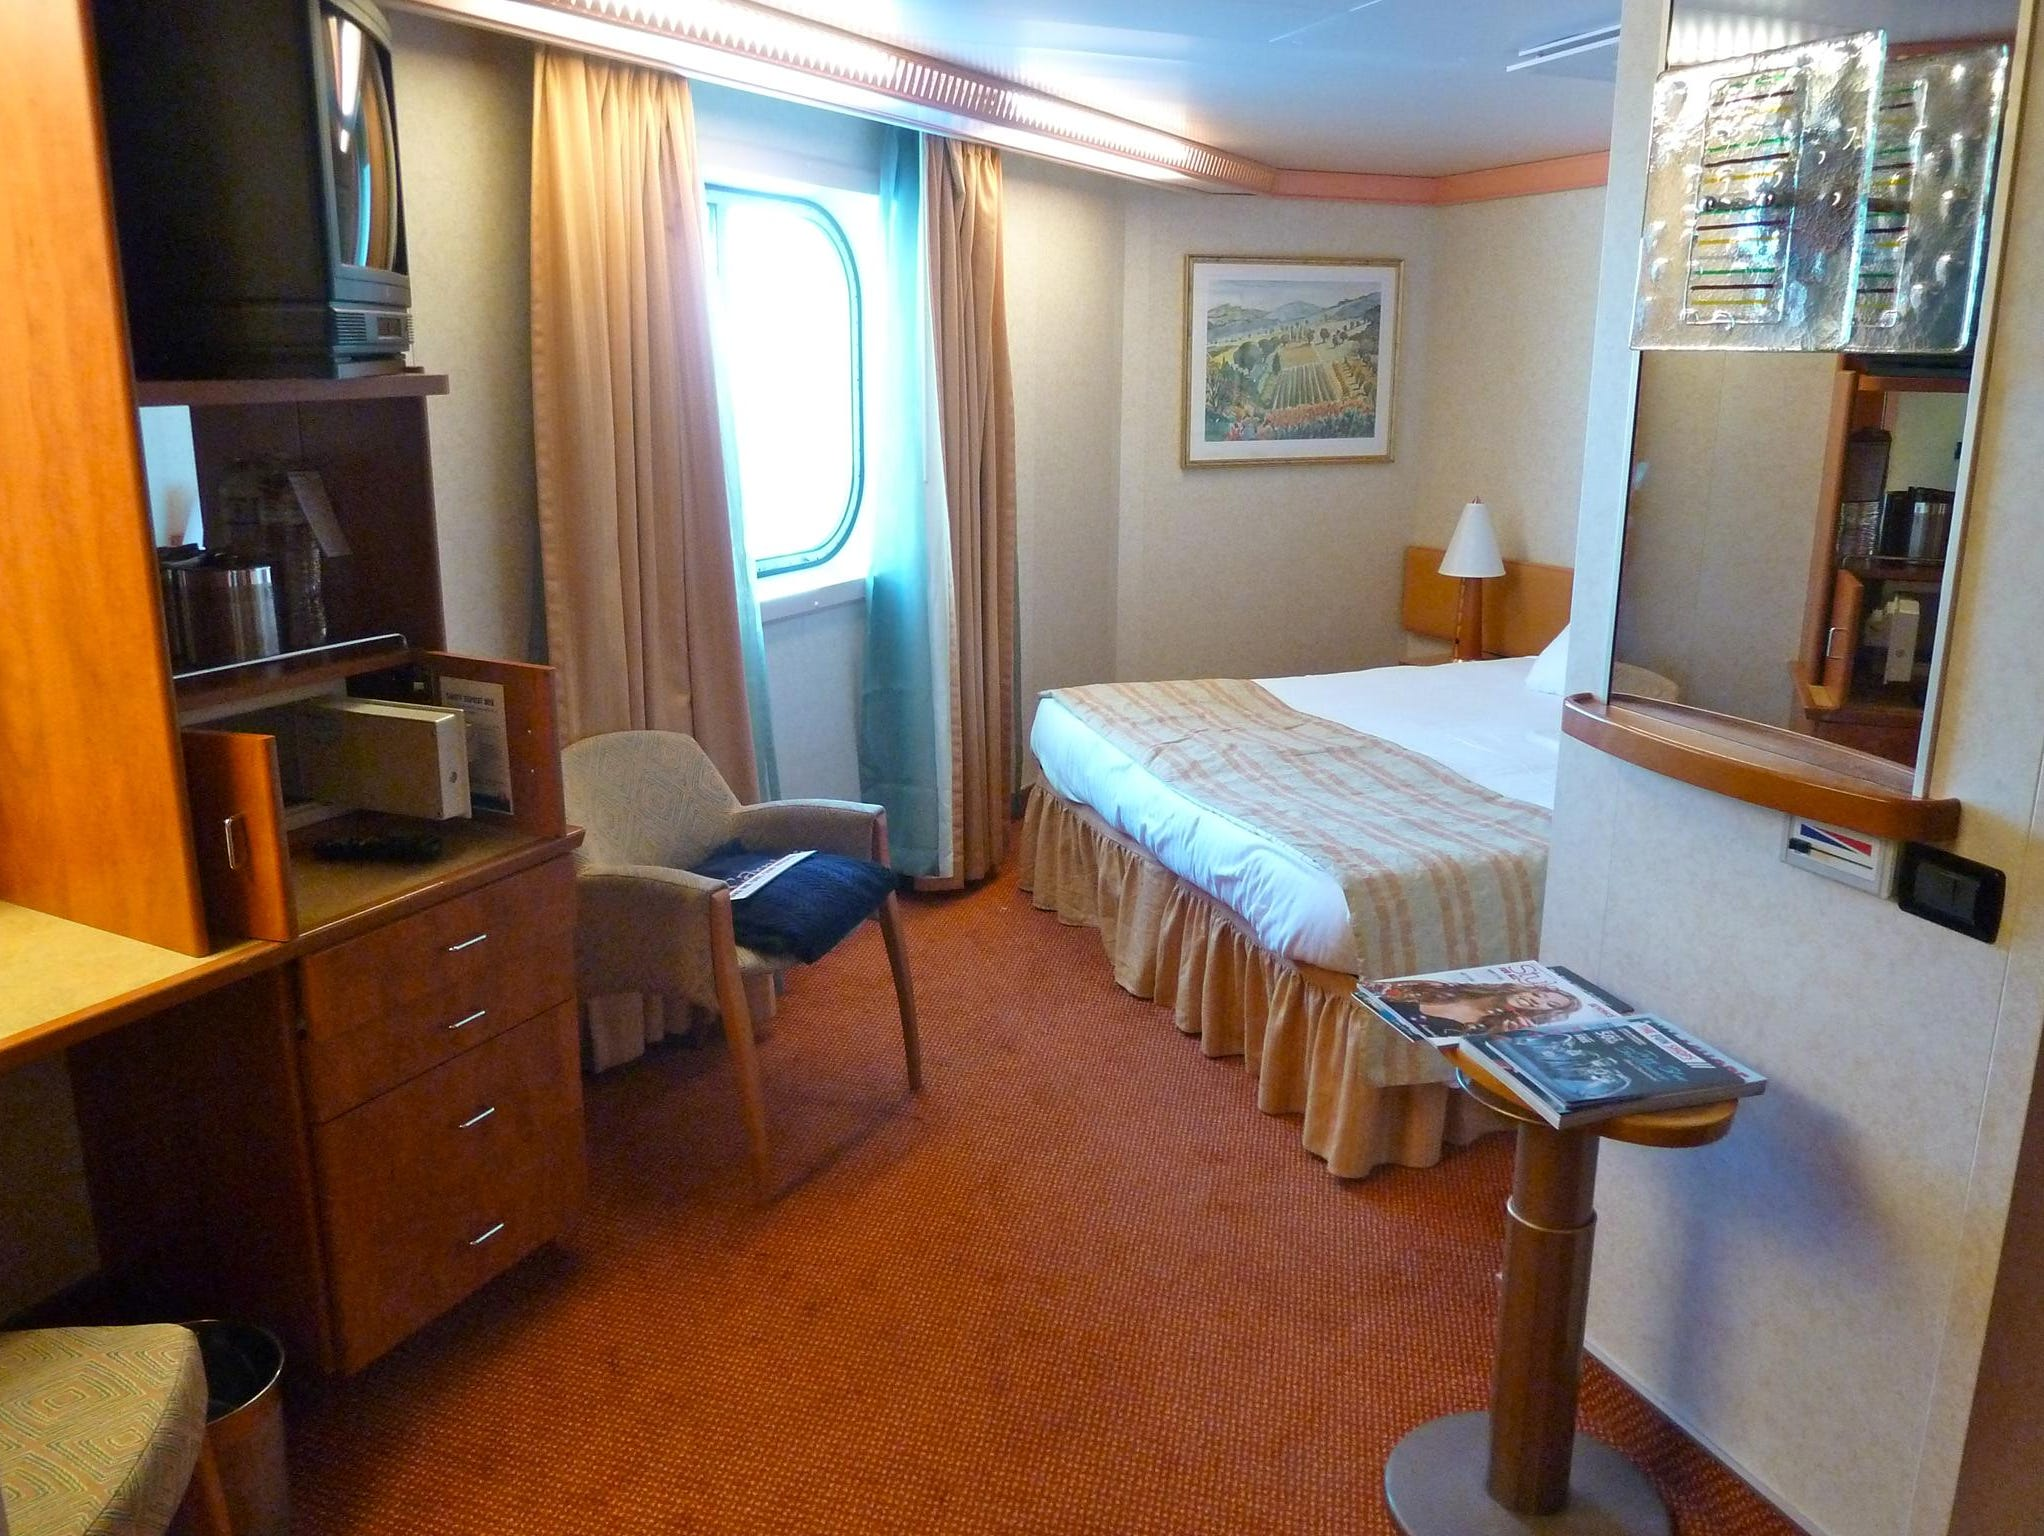 This is one of 327 Ocean View without Balcony staterooms. Equipped for wheelchair access, this particular cabin is located on forward Deck 10 and has an unusual floor plan due to the shape of the ship's superstructure.